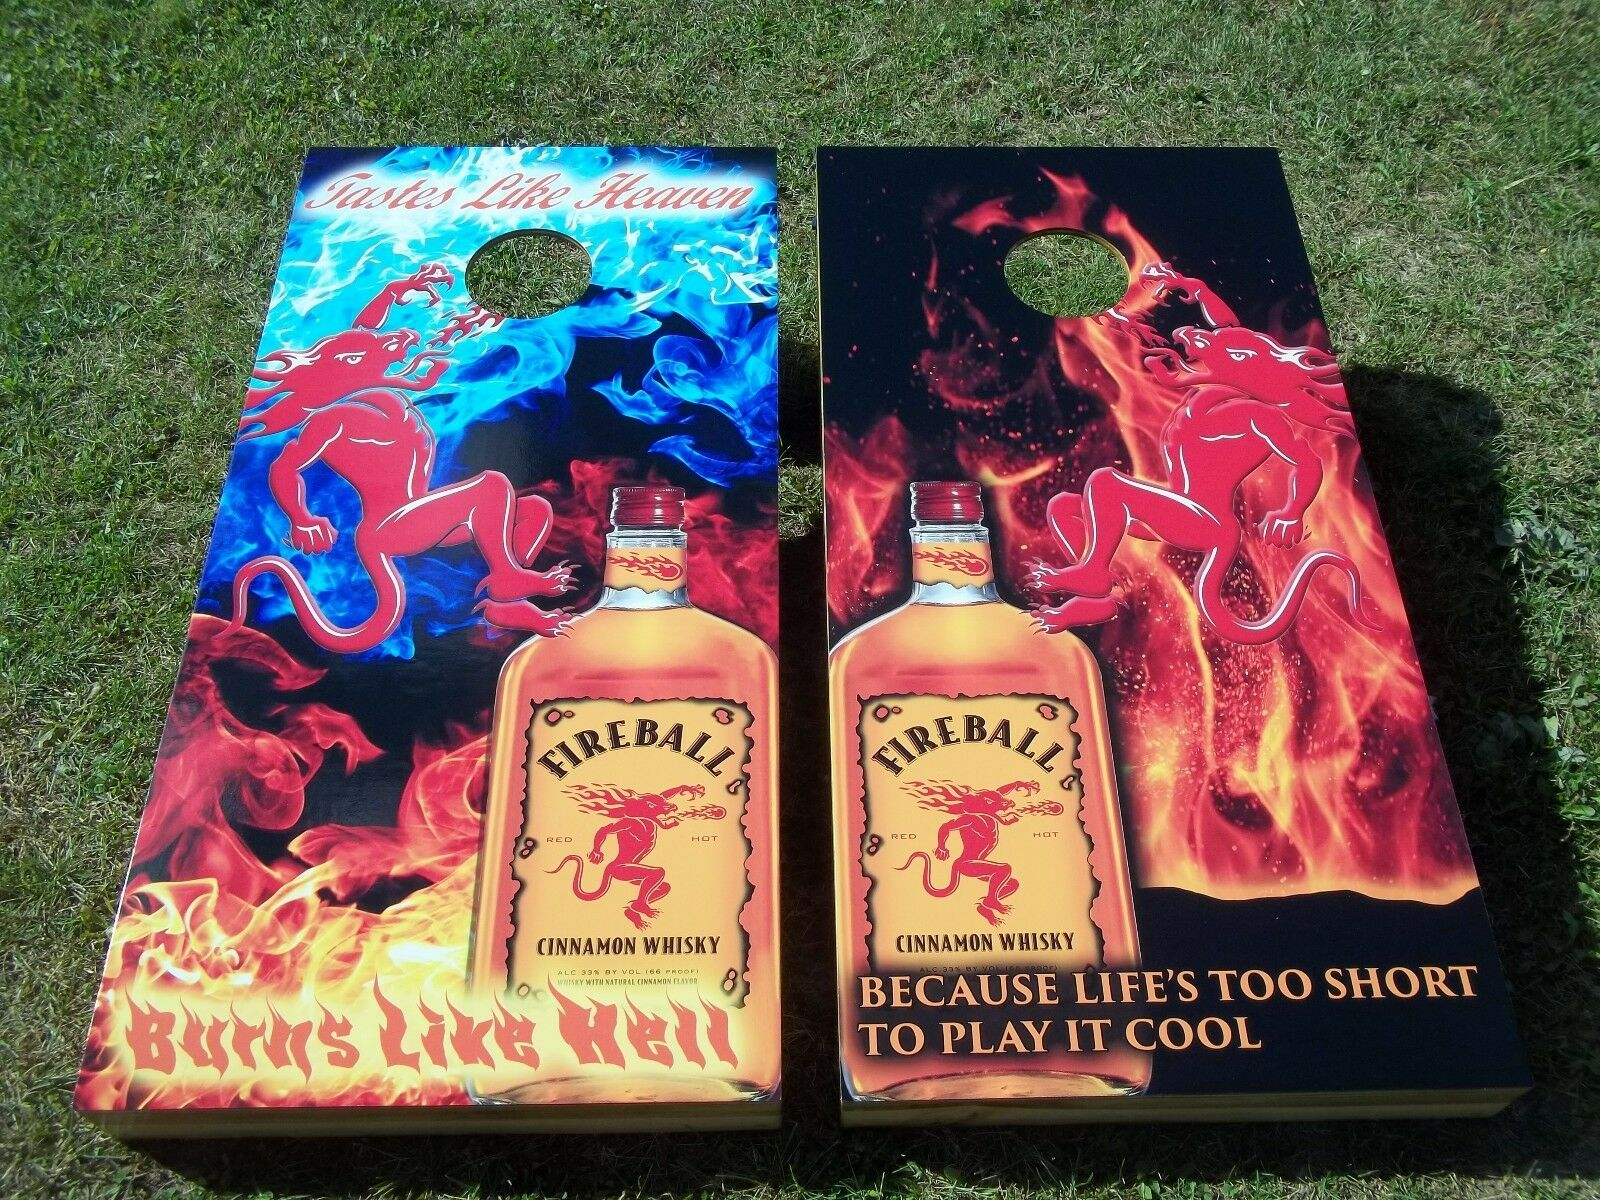 Fireball Corn Hole Boards - Bean Bag Toss Game